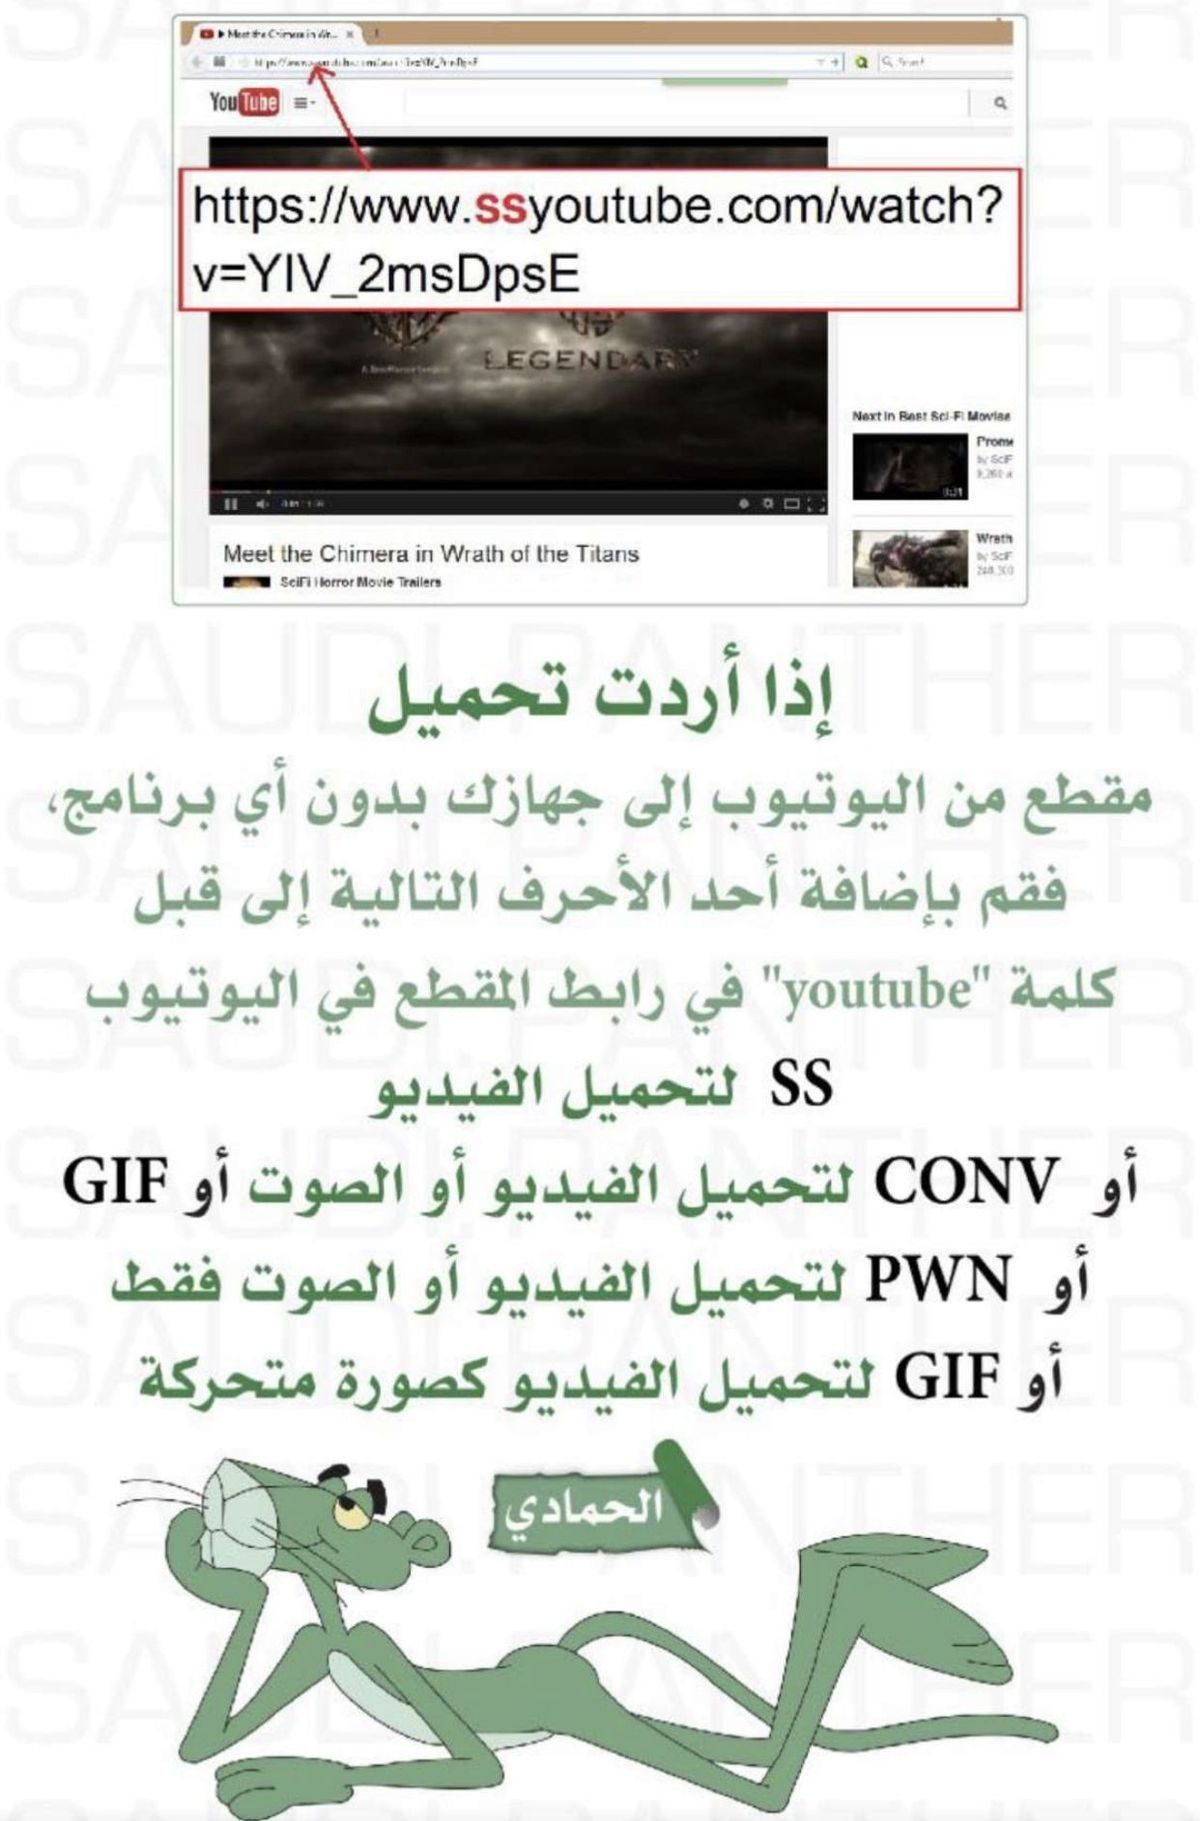 Pin By Leillly On بالعربي Learning Websites Programming Apps Learning Apps